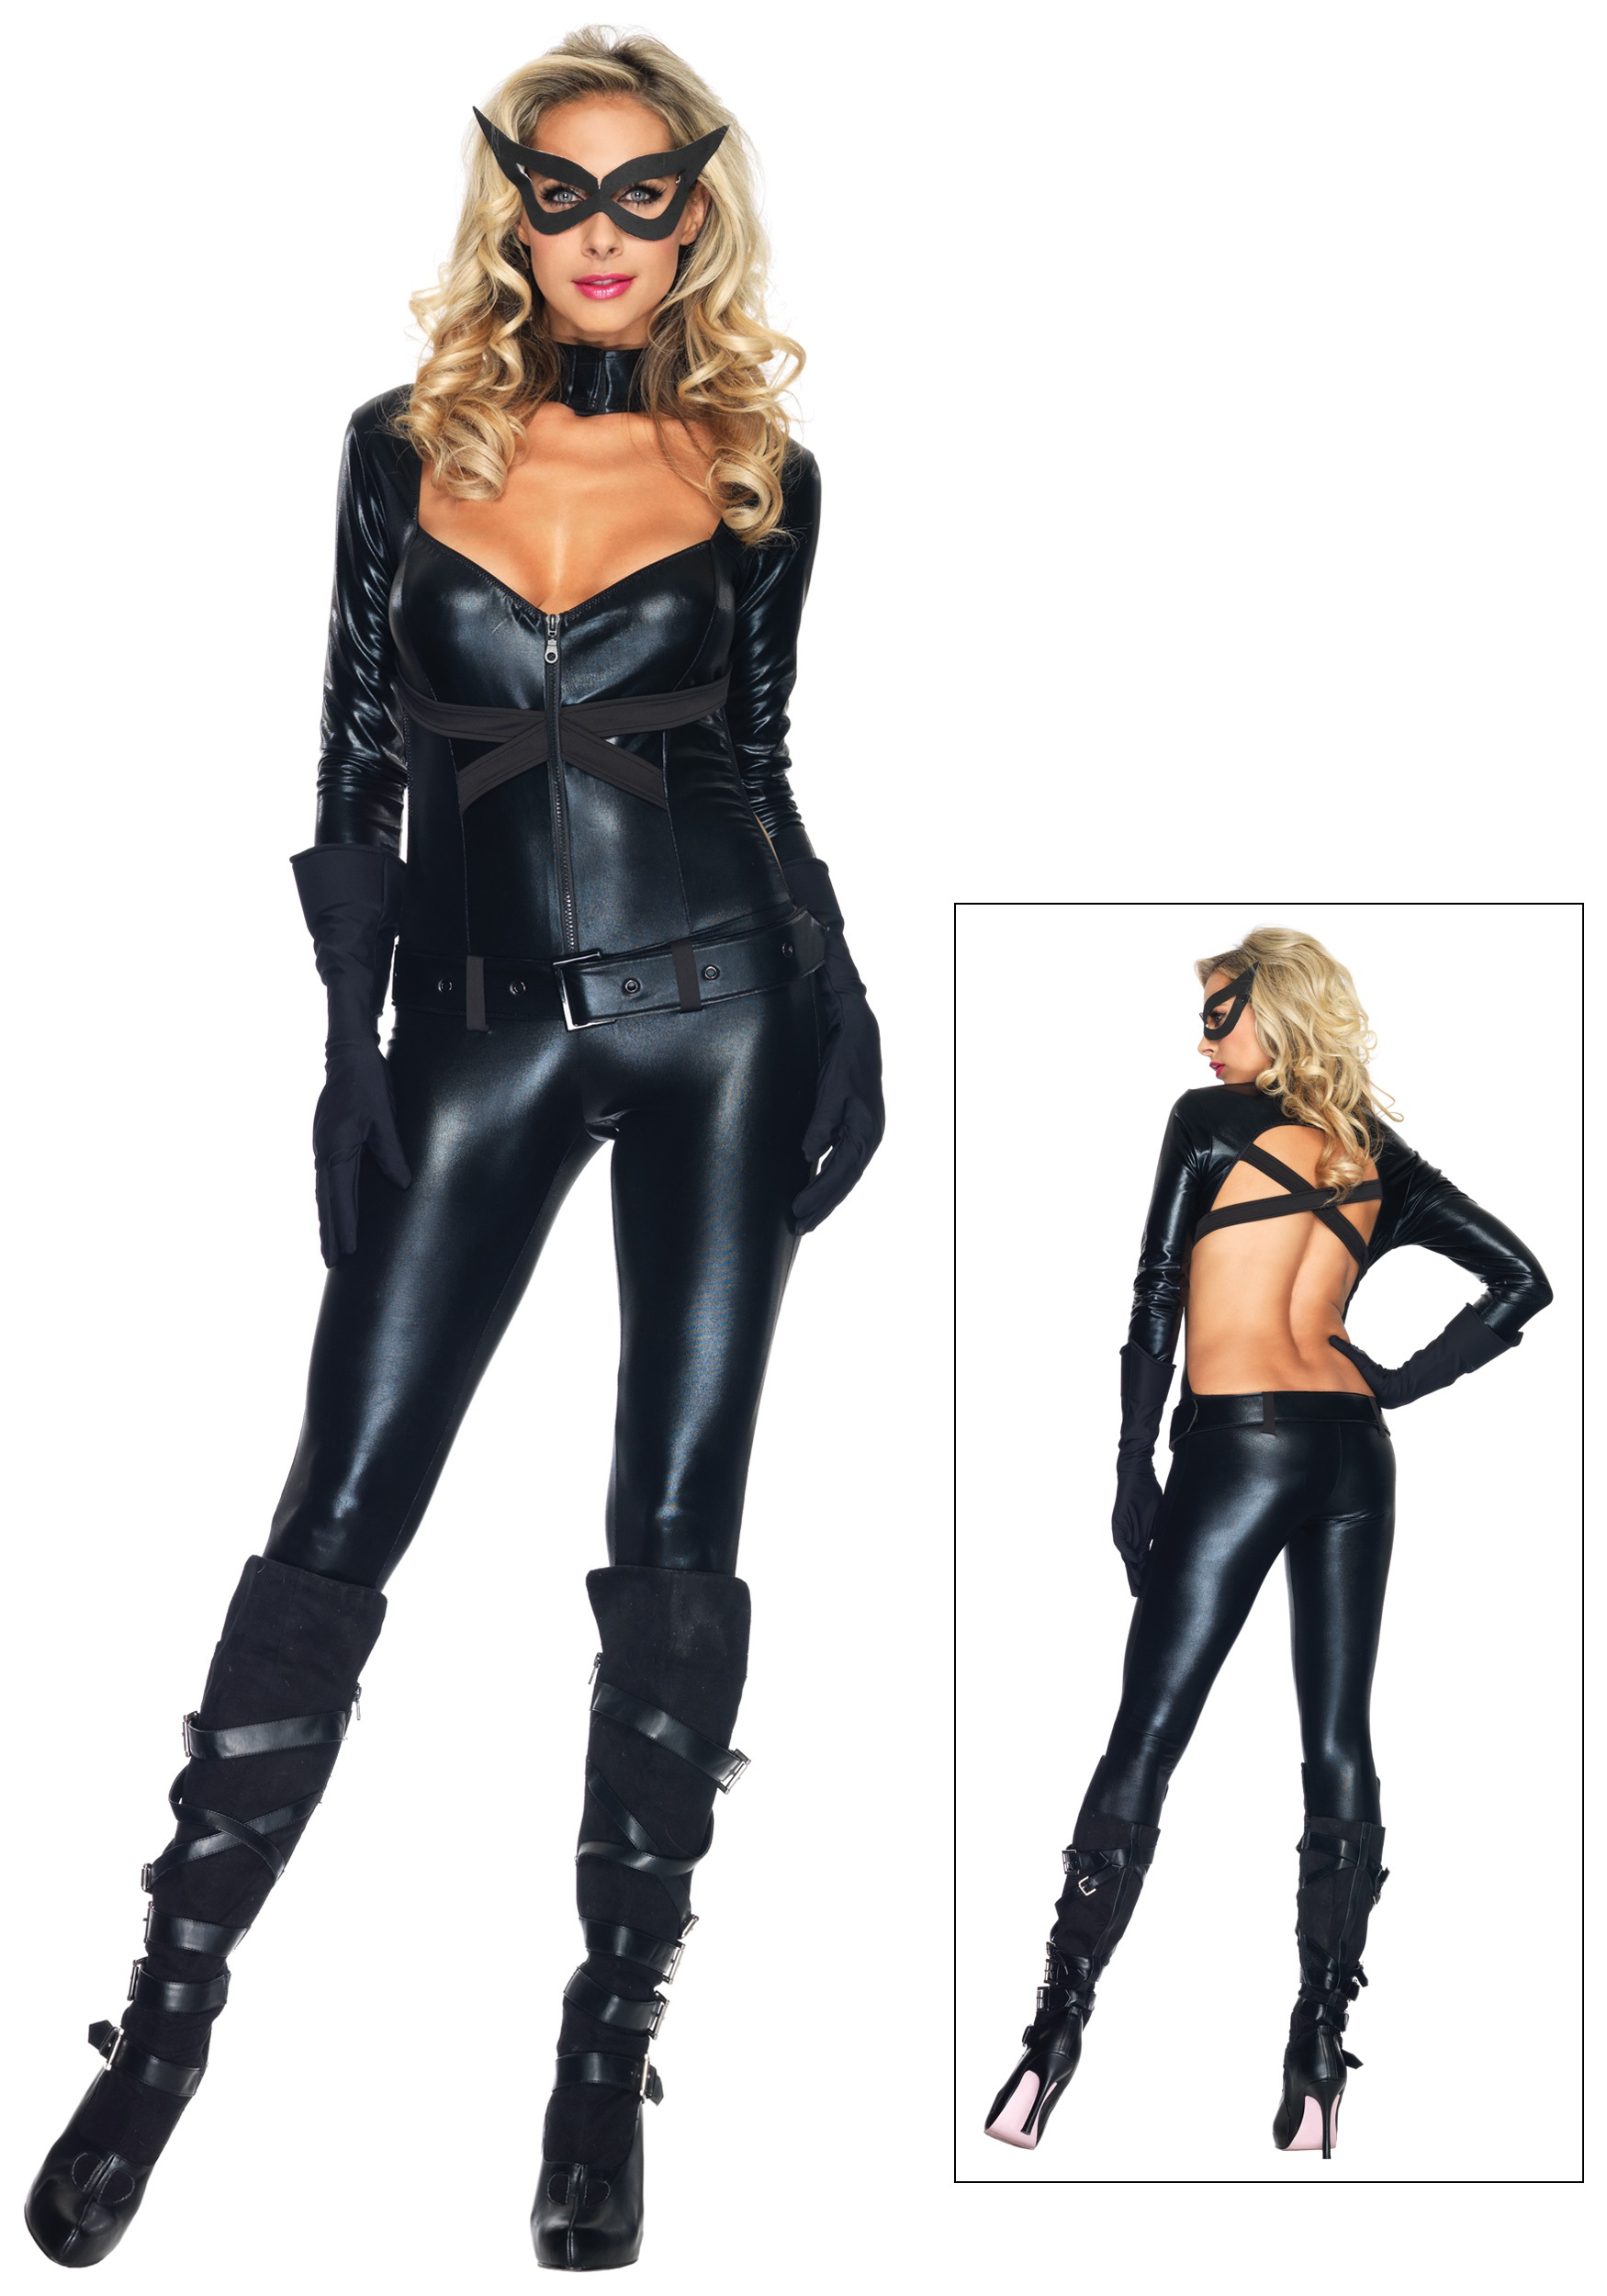 Terrific Cat Costumes For Kids And Adults Halloweencostumes Com Short Hairstyles For Black Women Fulllsitofus